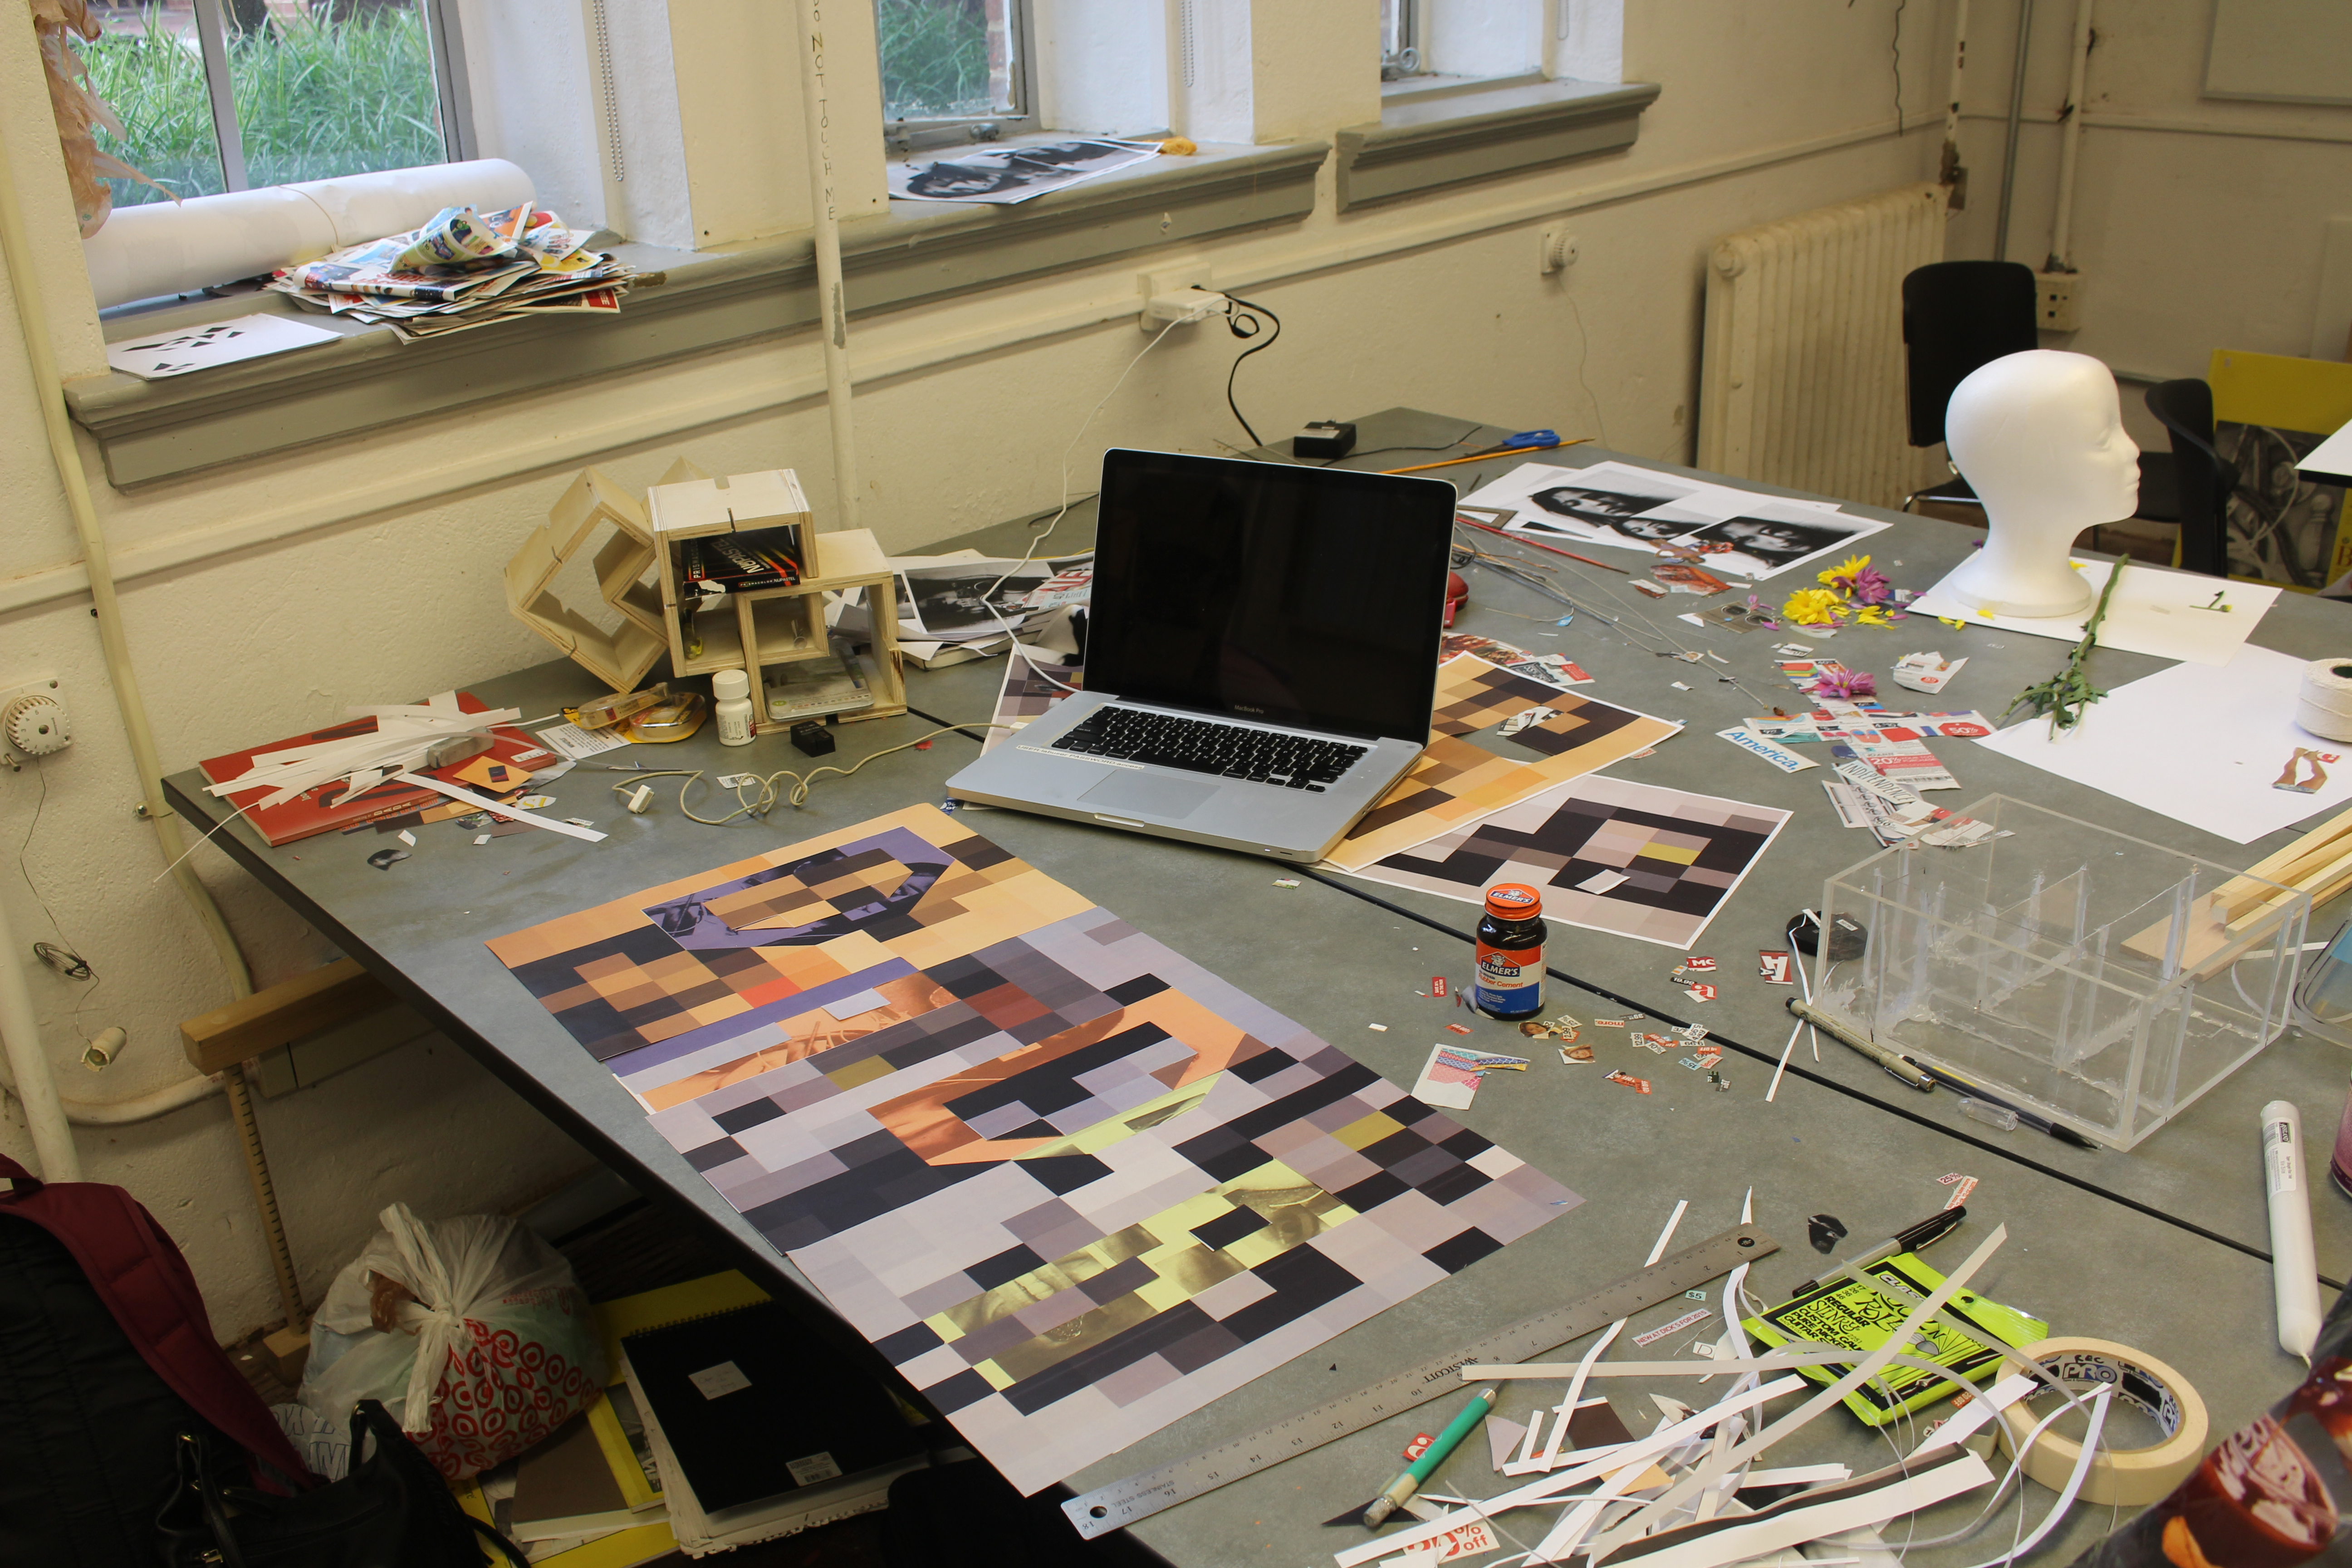 Jeanna's studio desk is covered with art supplies and materials from her projects.